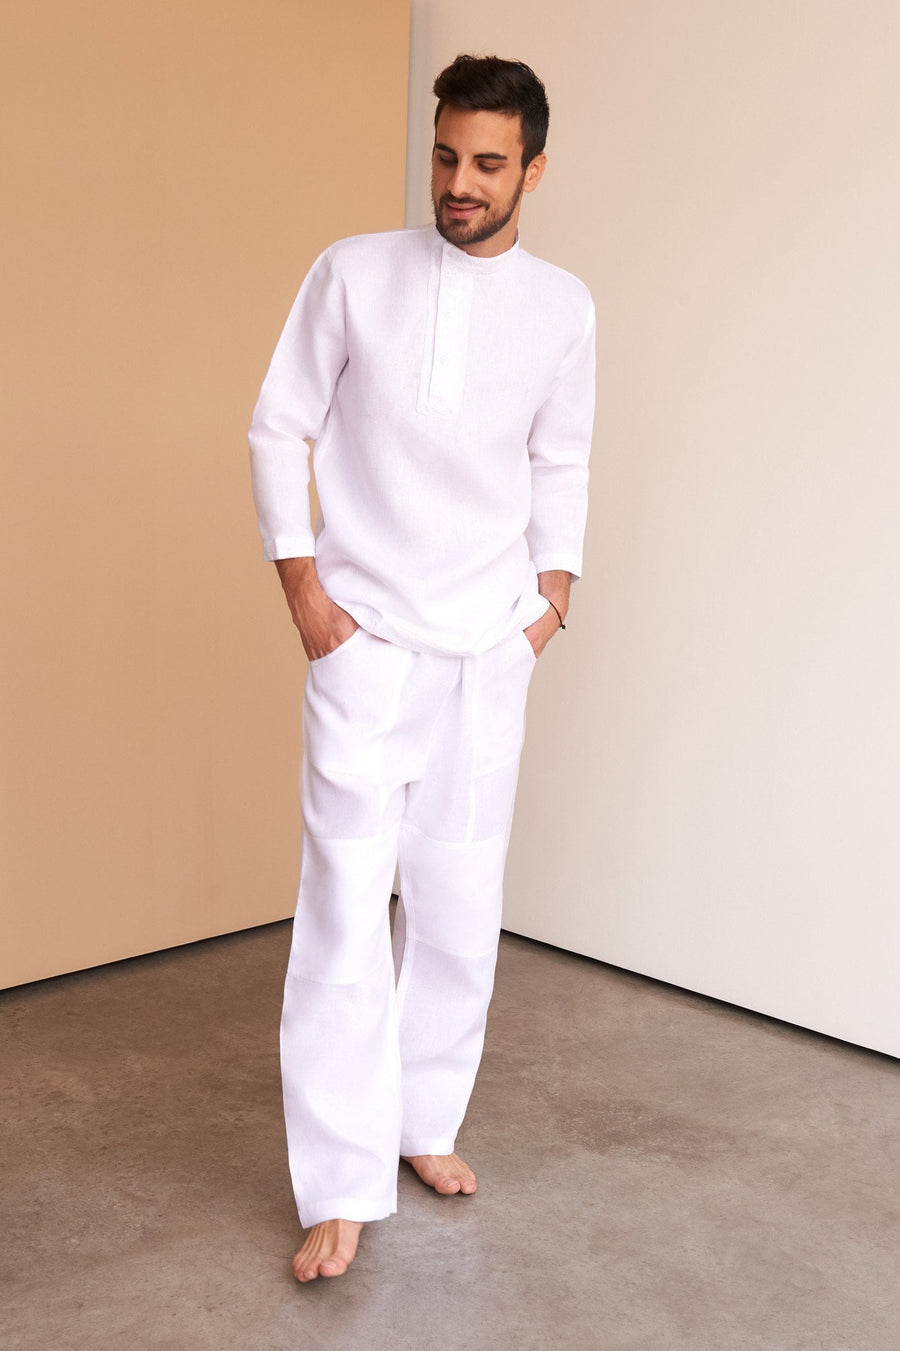 Men's Shirt White Linen Wear Clothing Fashion Luxury Yacht Russian